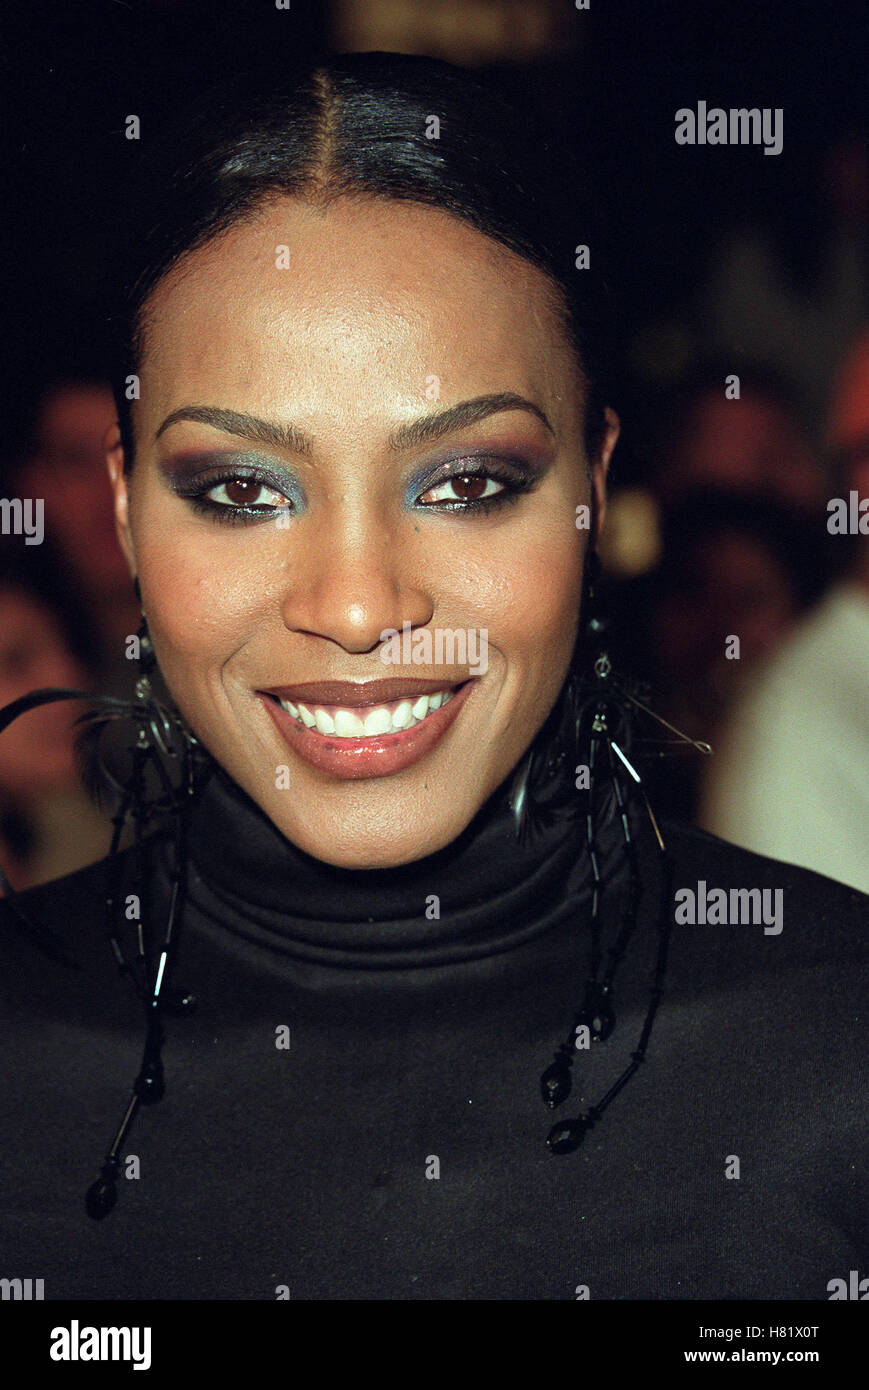 NONA GAYE MUHAMMAD ALI'S 60TH BIRTHDAY KODAK THEATRE LA USA 12 January 2002 - Stock Image